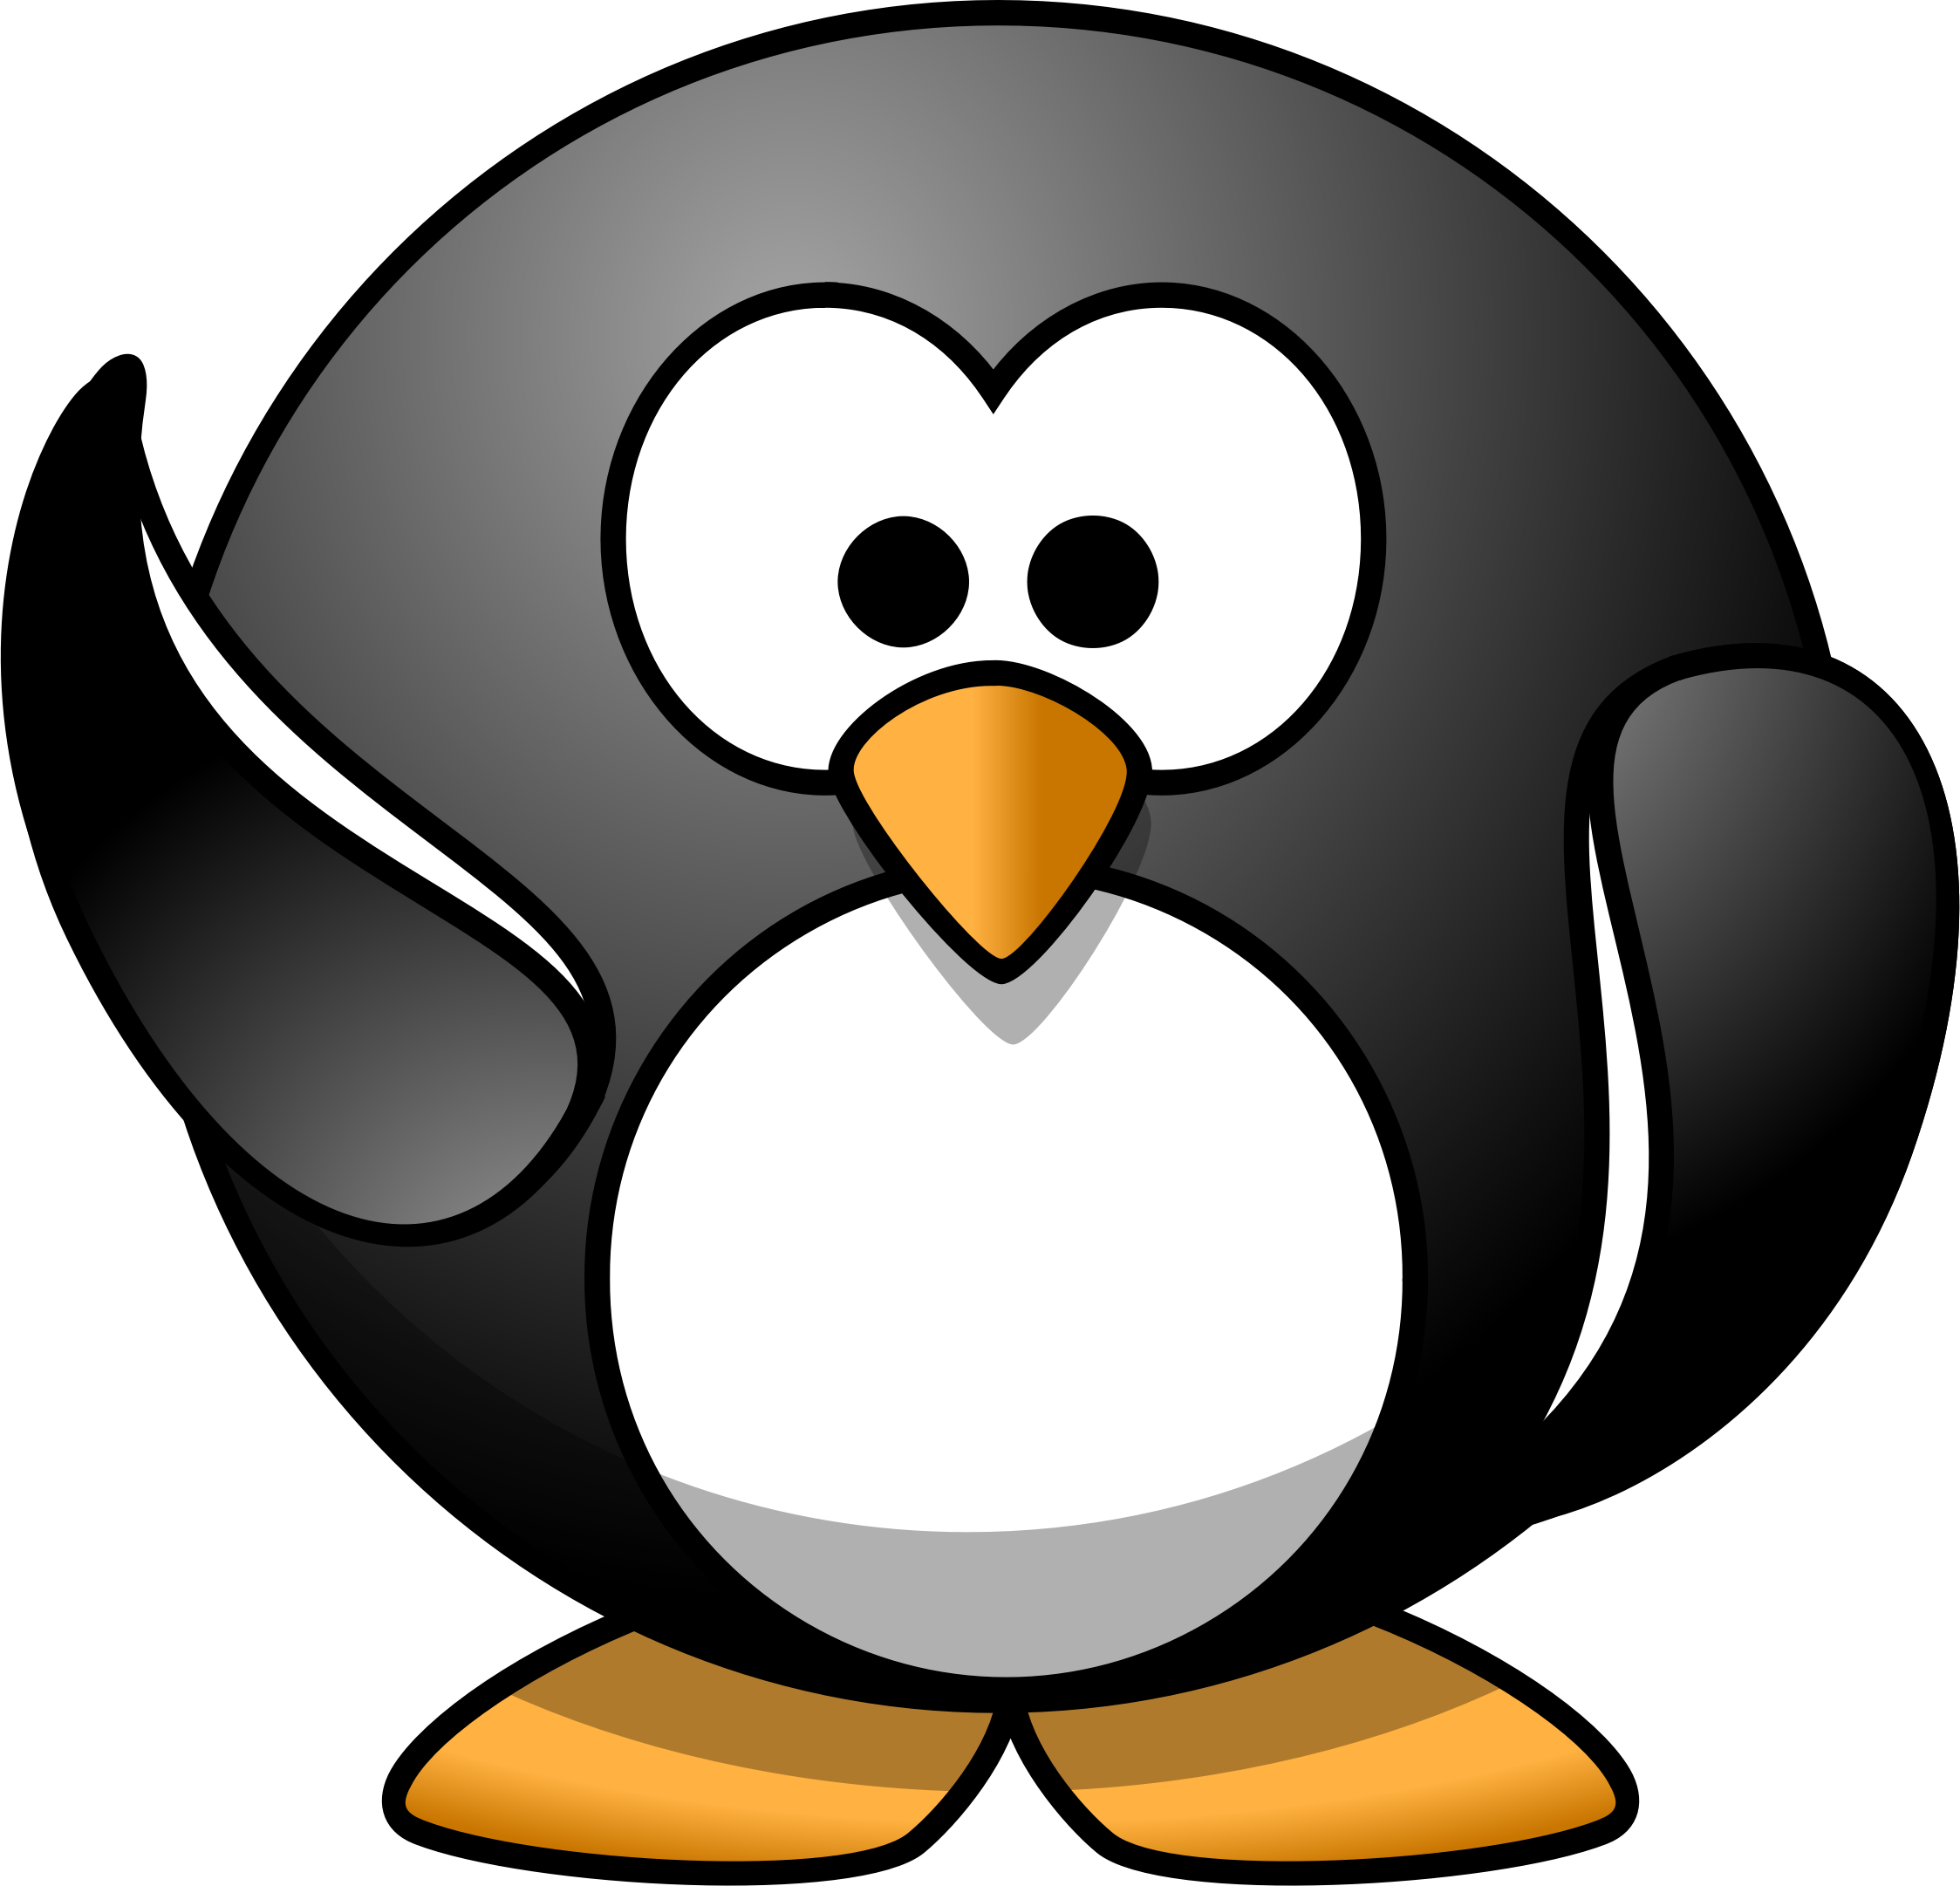 Waving penguin. Waves clipart cartoon clip art